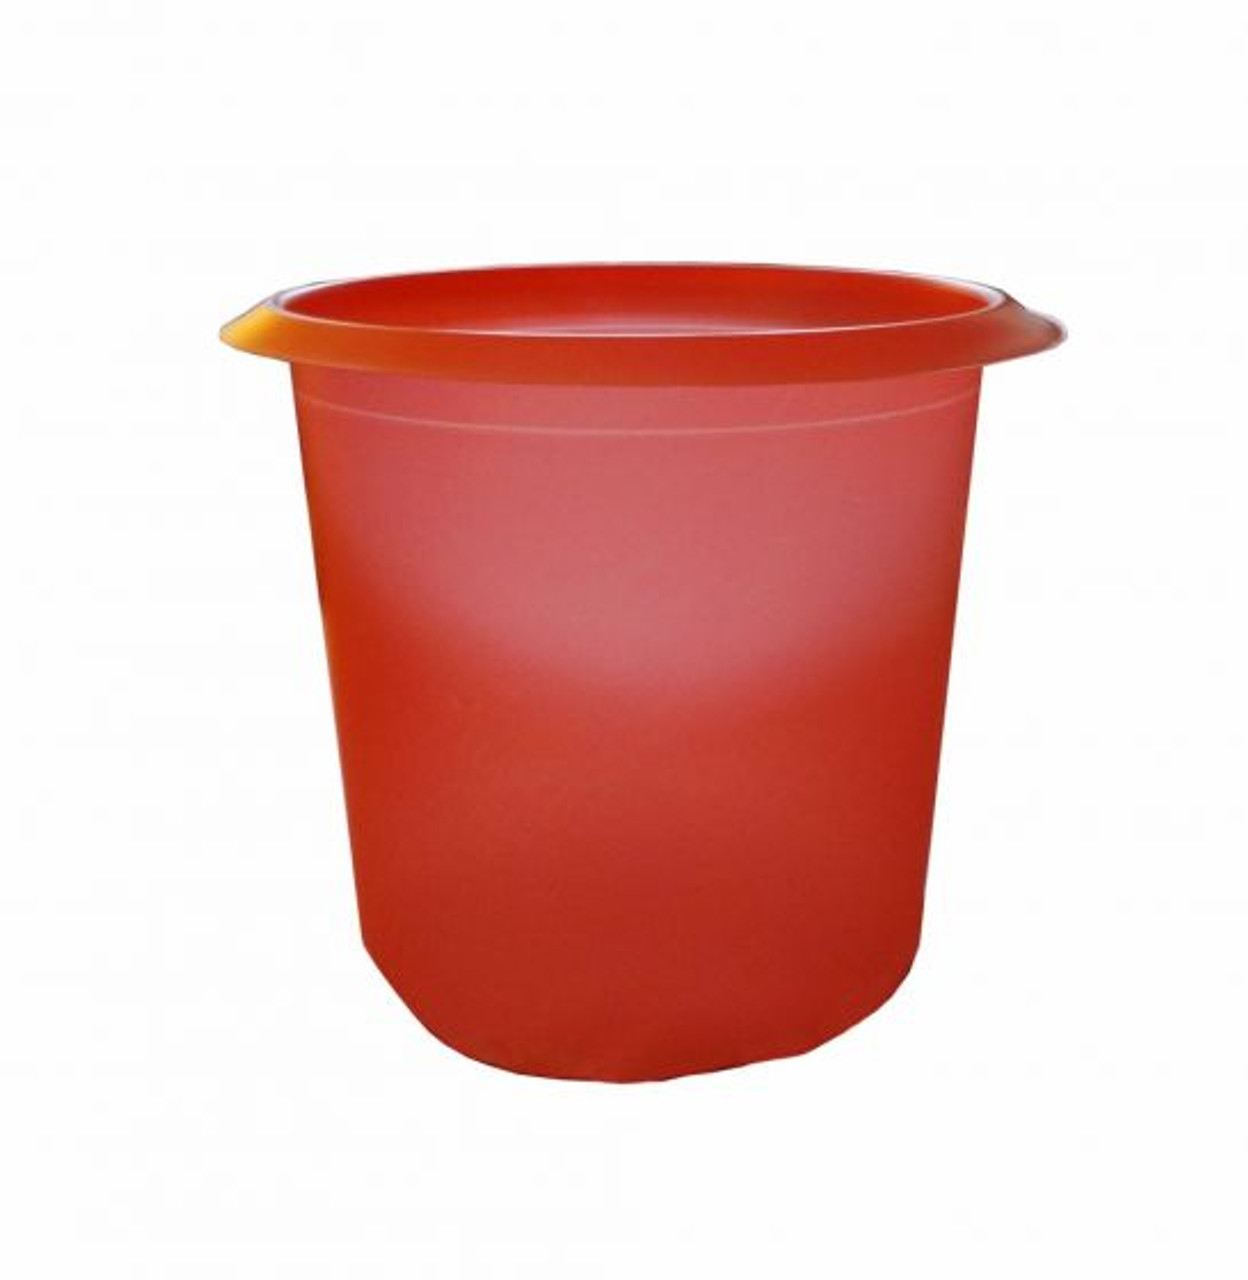 2 GALLON TAPERED ANTI-STATIC PAIL LINER - 15 MIL